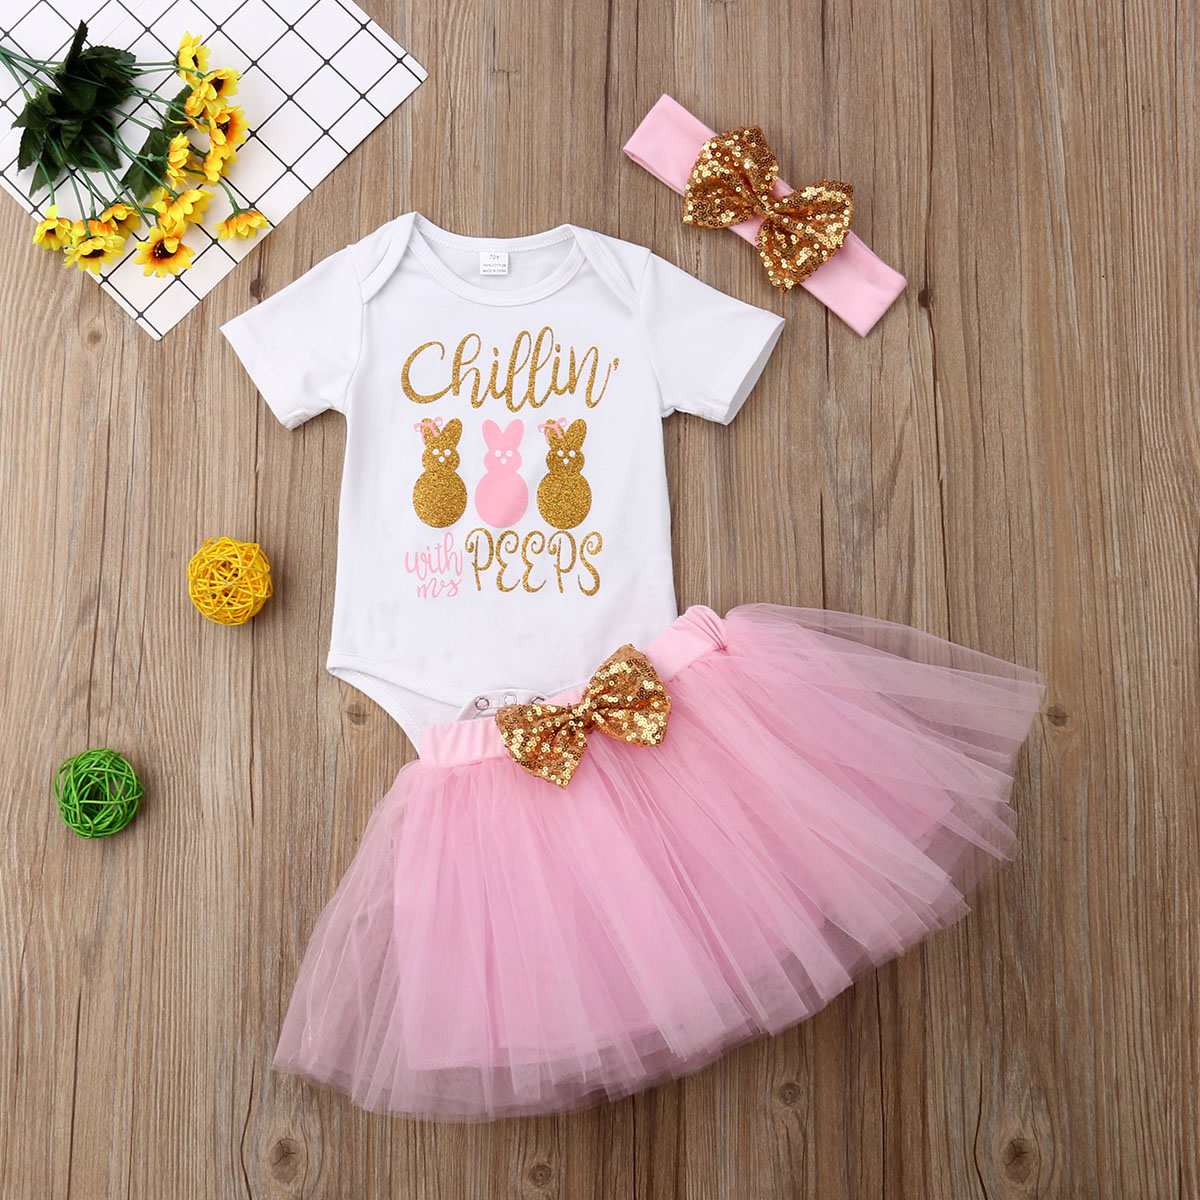 1st Birthday Outfit Baby Girls Romper+Pink Ruffle Tulle Skirt+Crown Headband Cake Smash Dress Party Costume 3Pcs Set